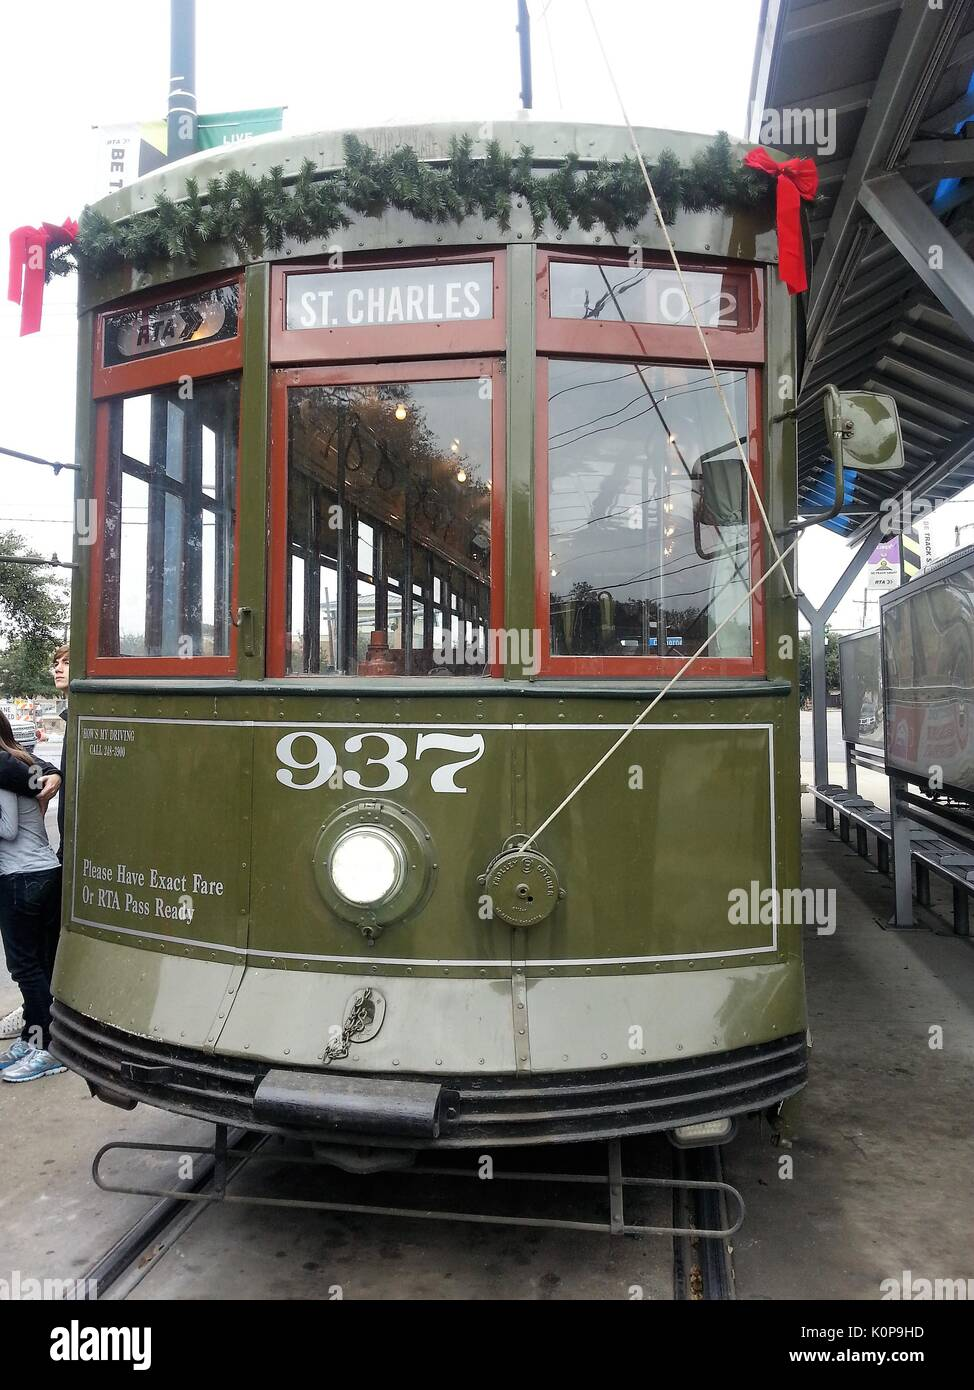 Streetcars in New Orleans, Louisiana - Stock Image